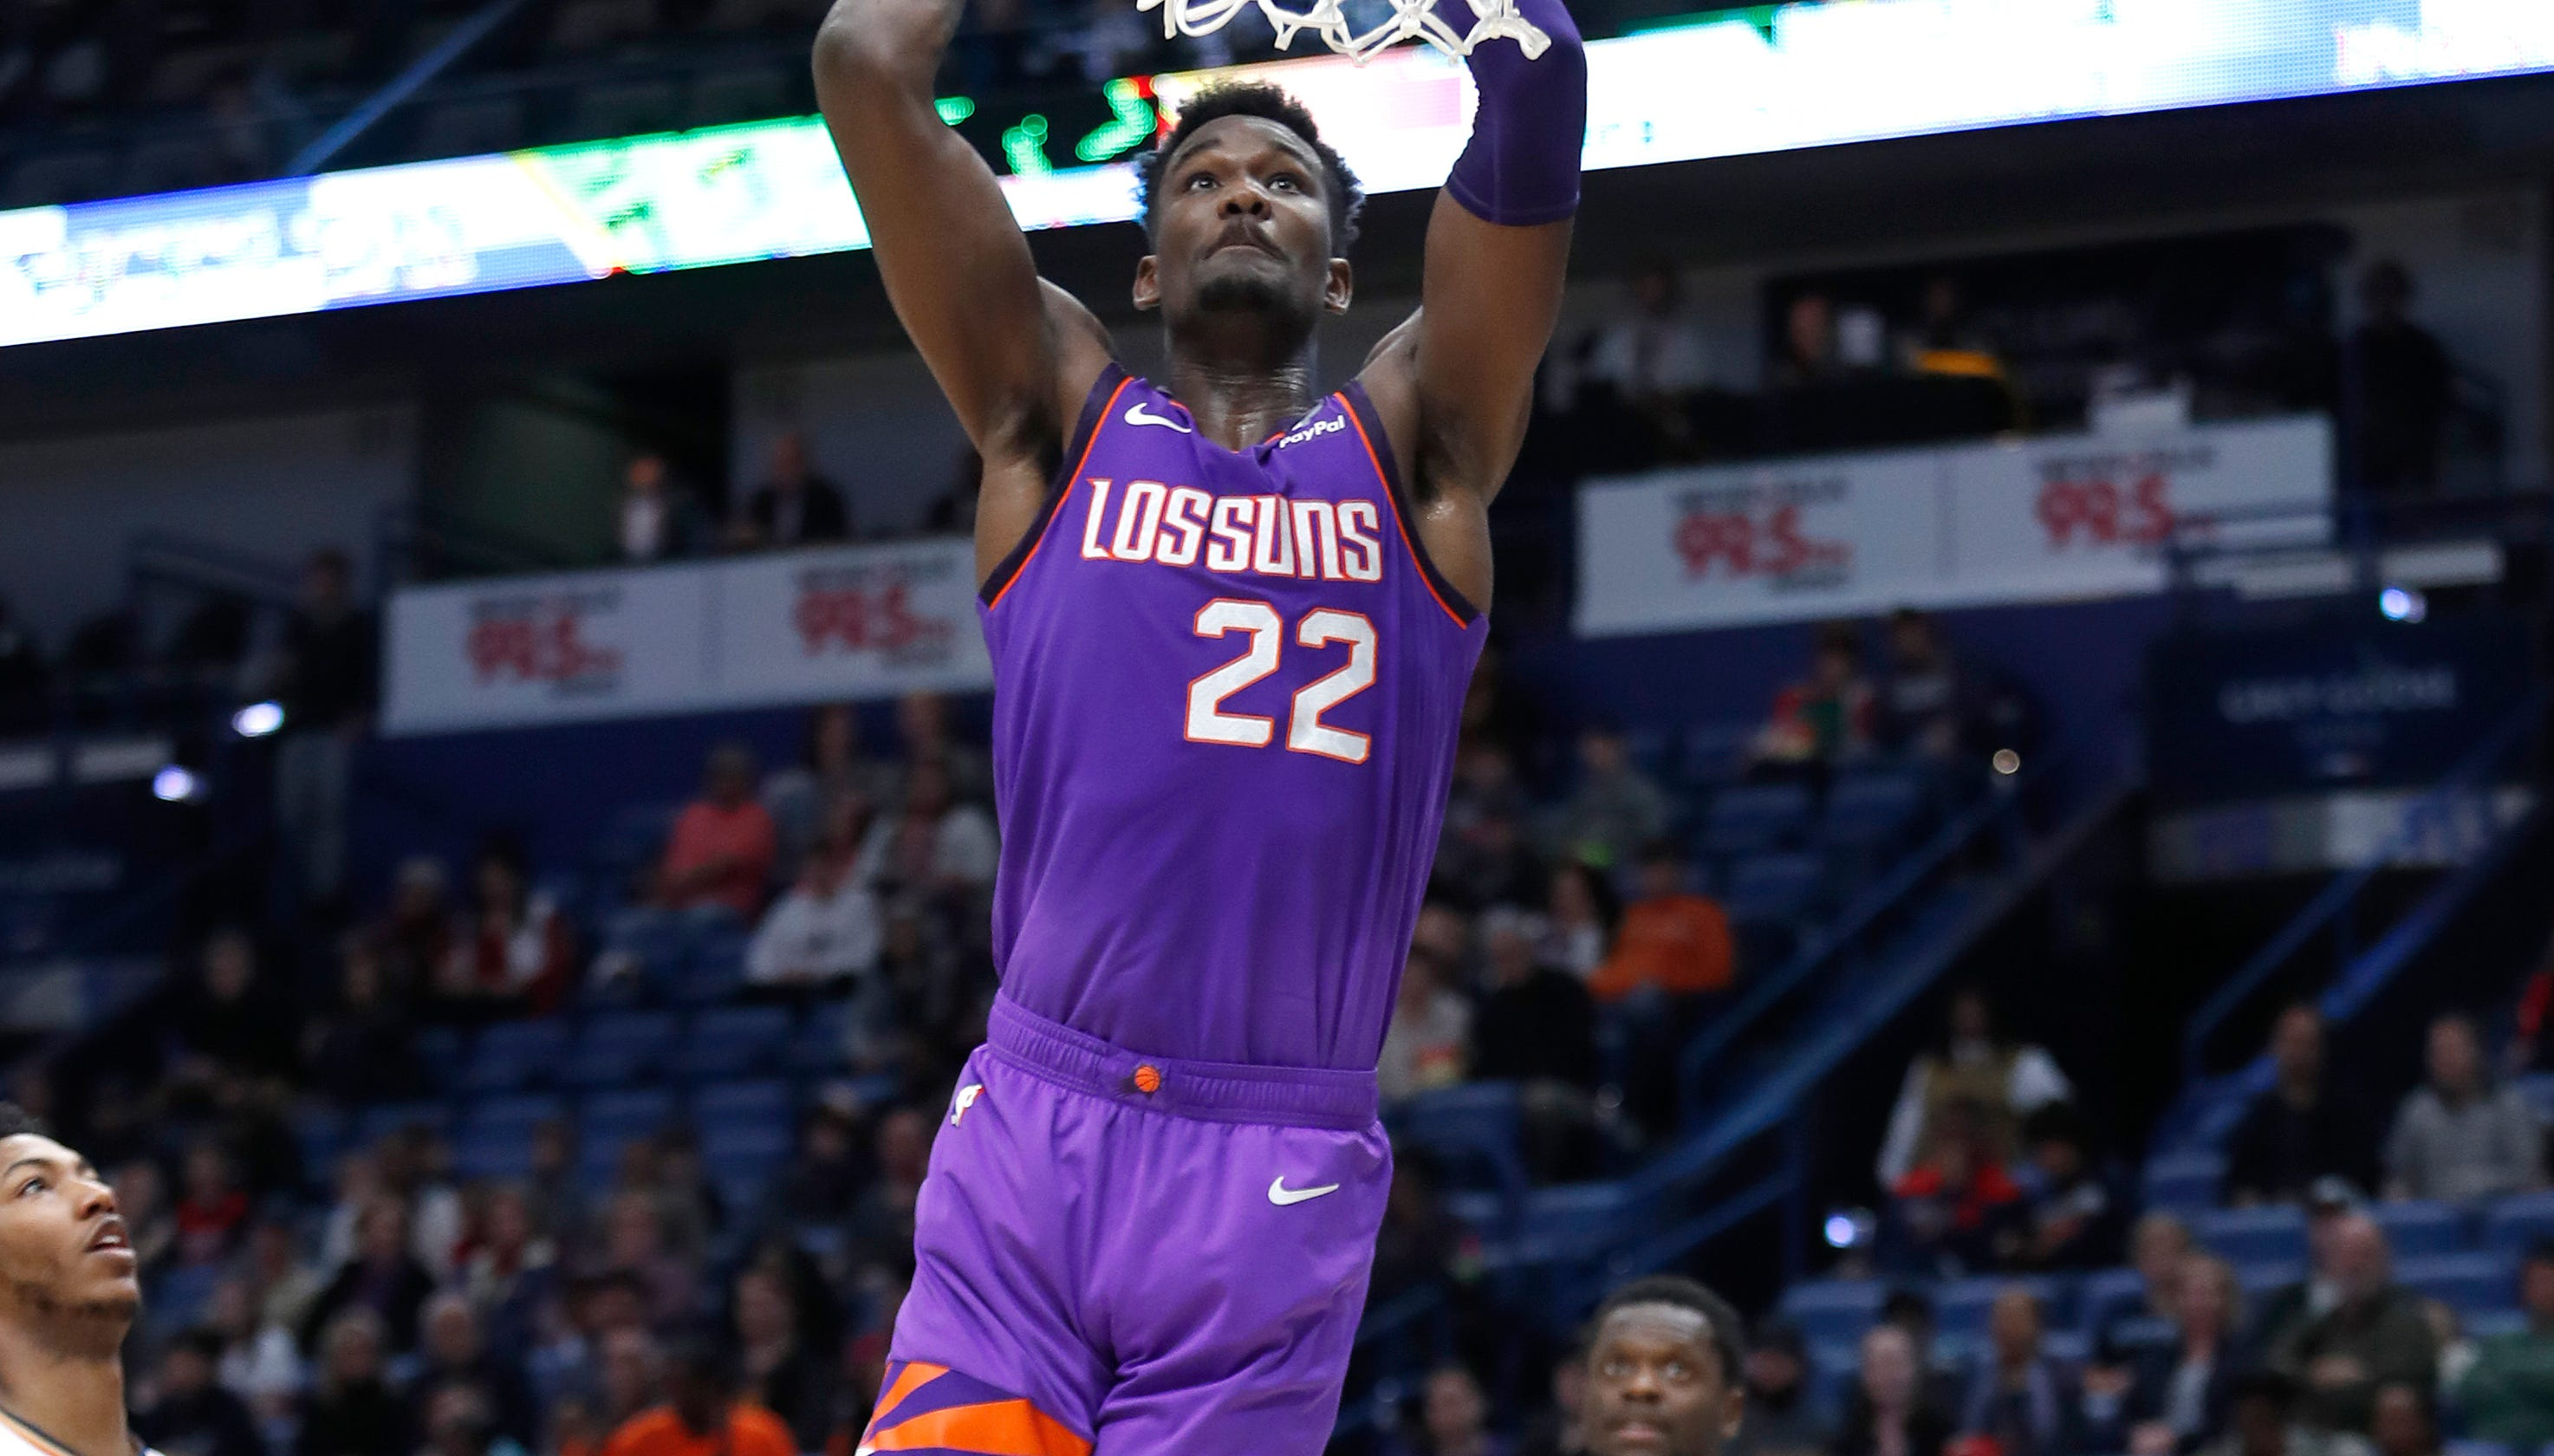 Michael Avenatti tweets Deandre Ayton, Bol Bol involved in alleged Nike cover-up